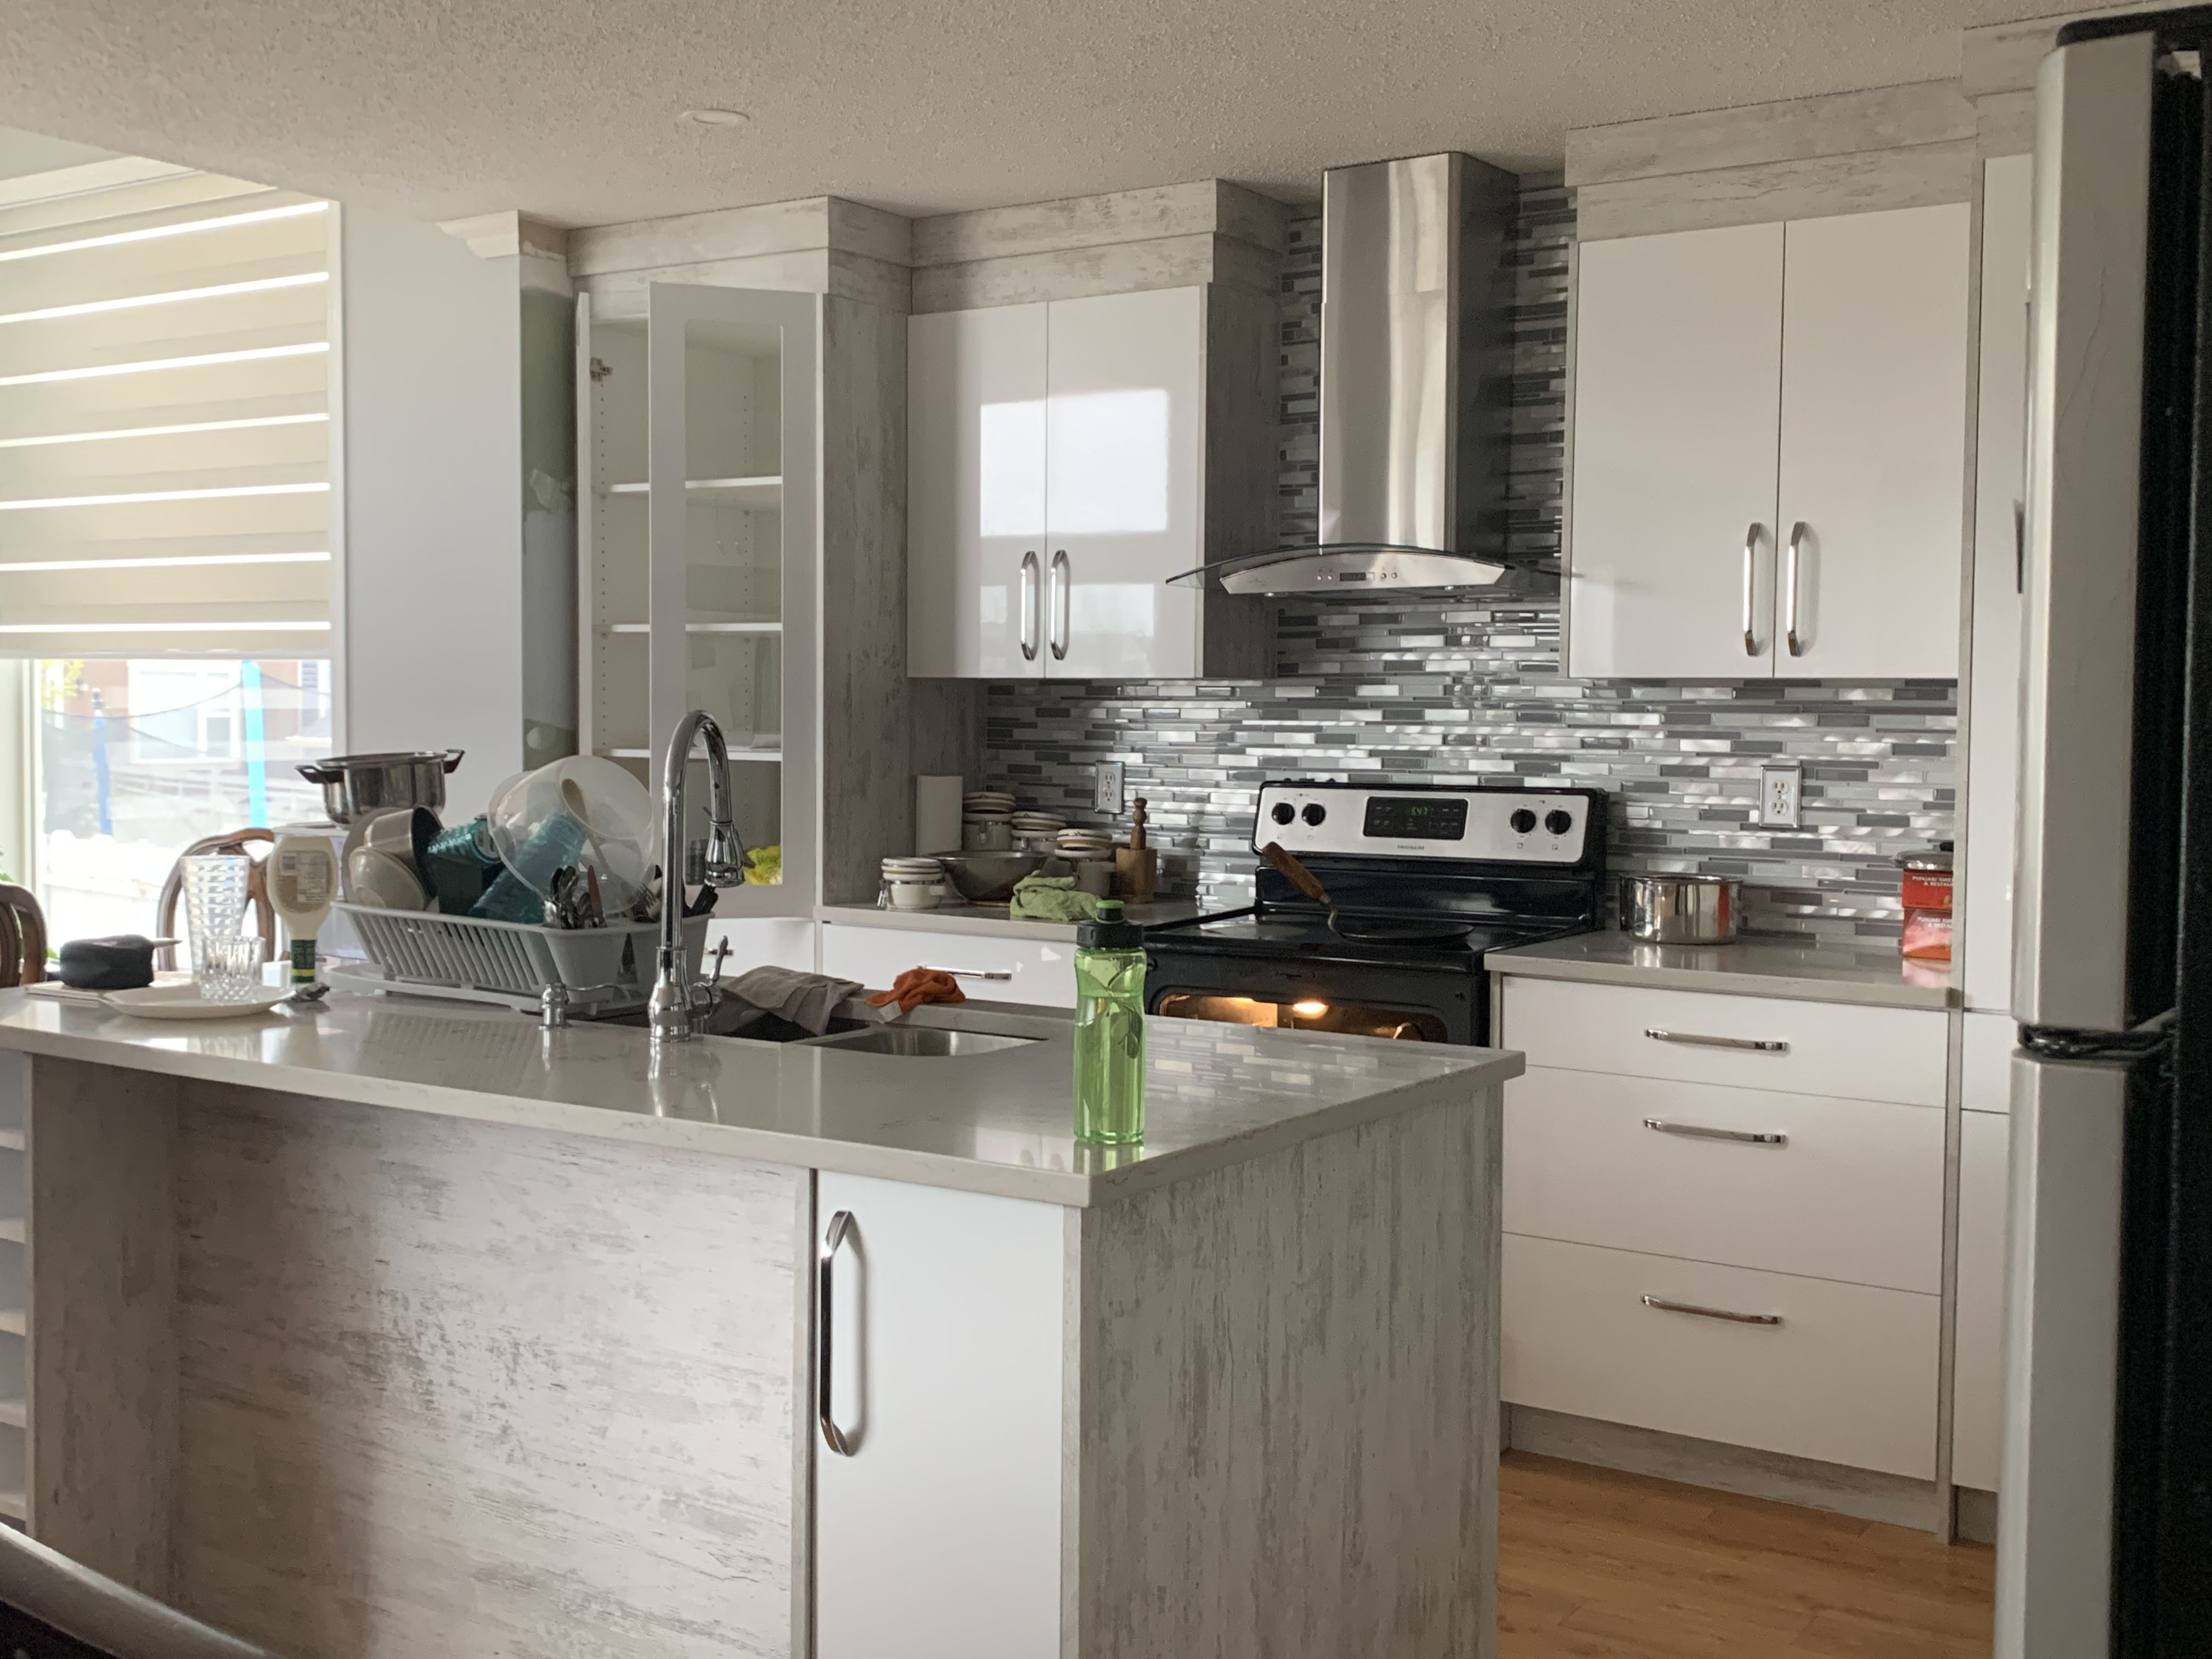 Kitchen Renovations In Calgary In 2020 Kitchen Renovation Kitchen Craft Cabinets Quality Kitchen Cabinets